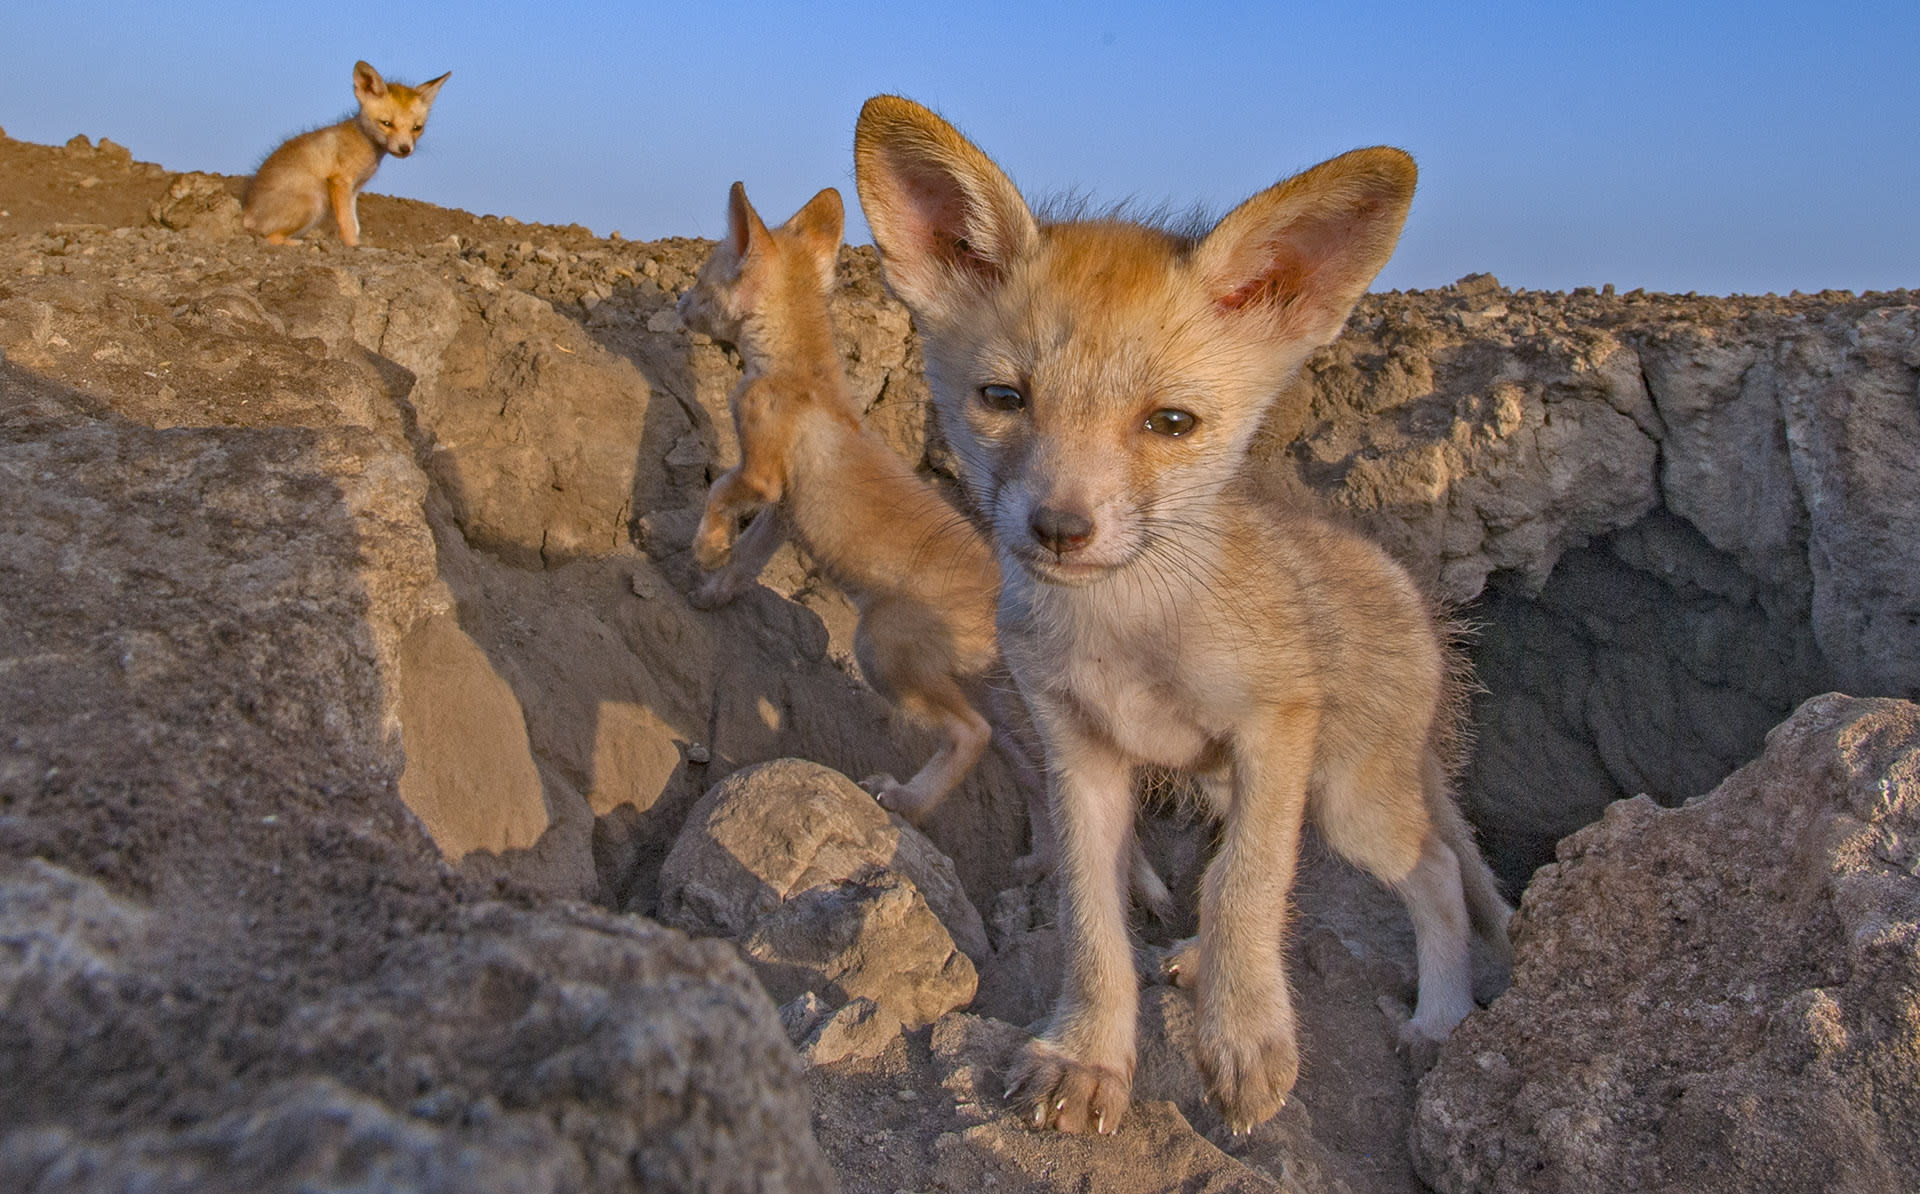 Desert foxes dig elaborate breeding dens with multiple entrances to house their young, abandoning the spaces once the pups are old enough to look after themselves.